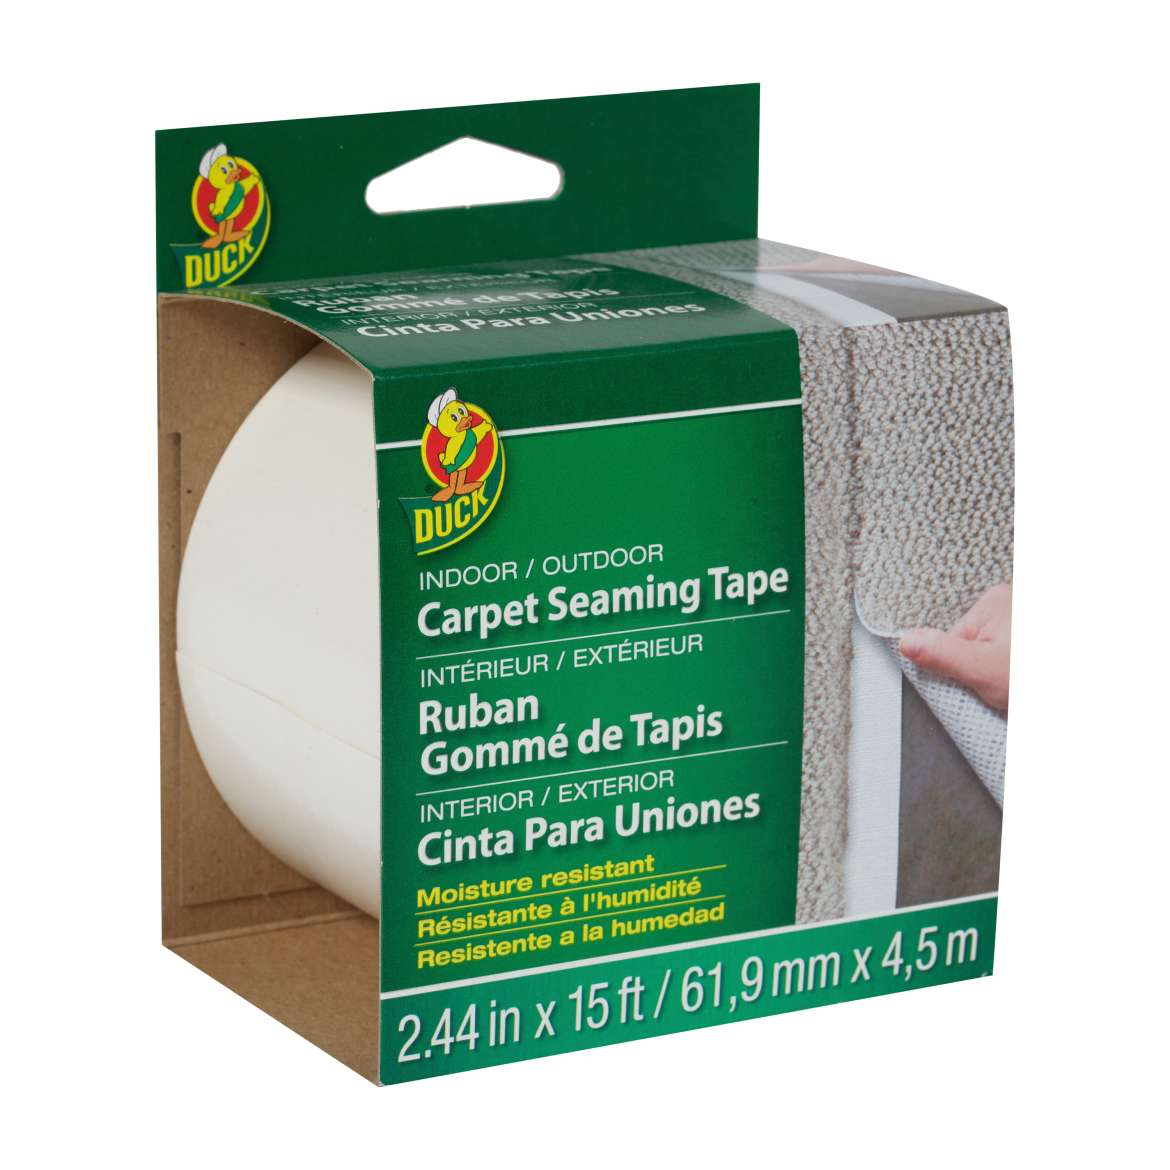 Carpet Seaming Tape Image